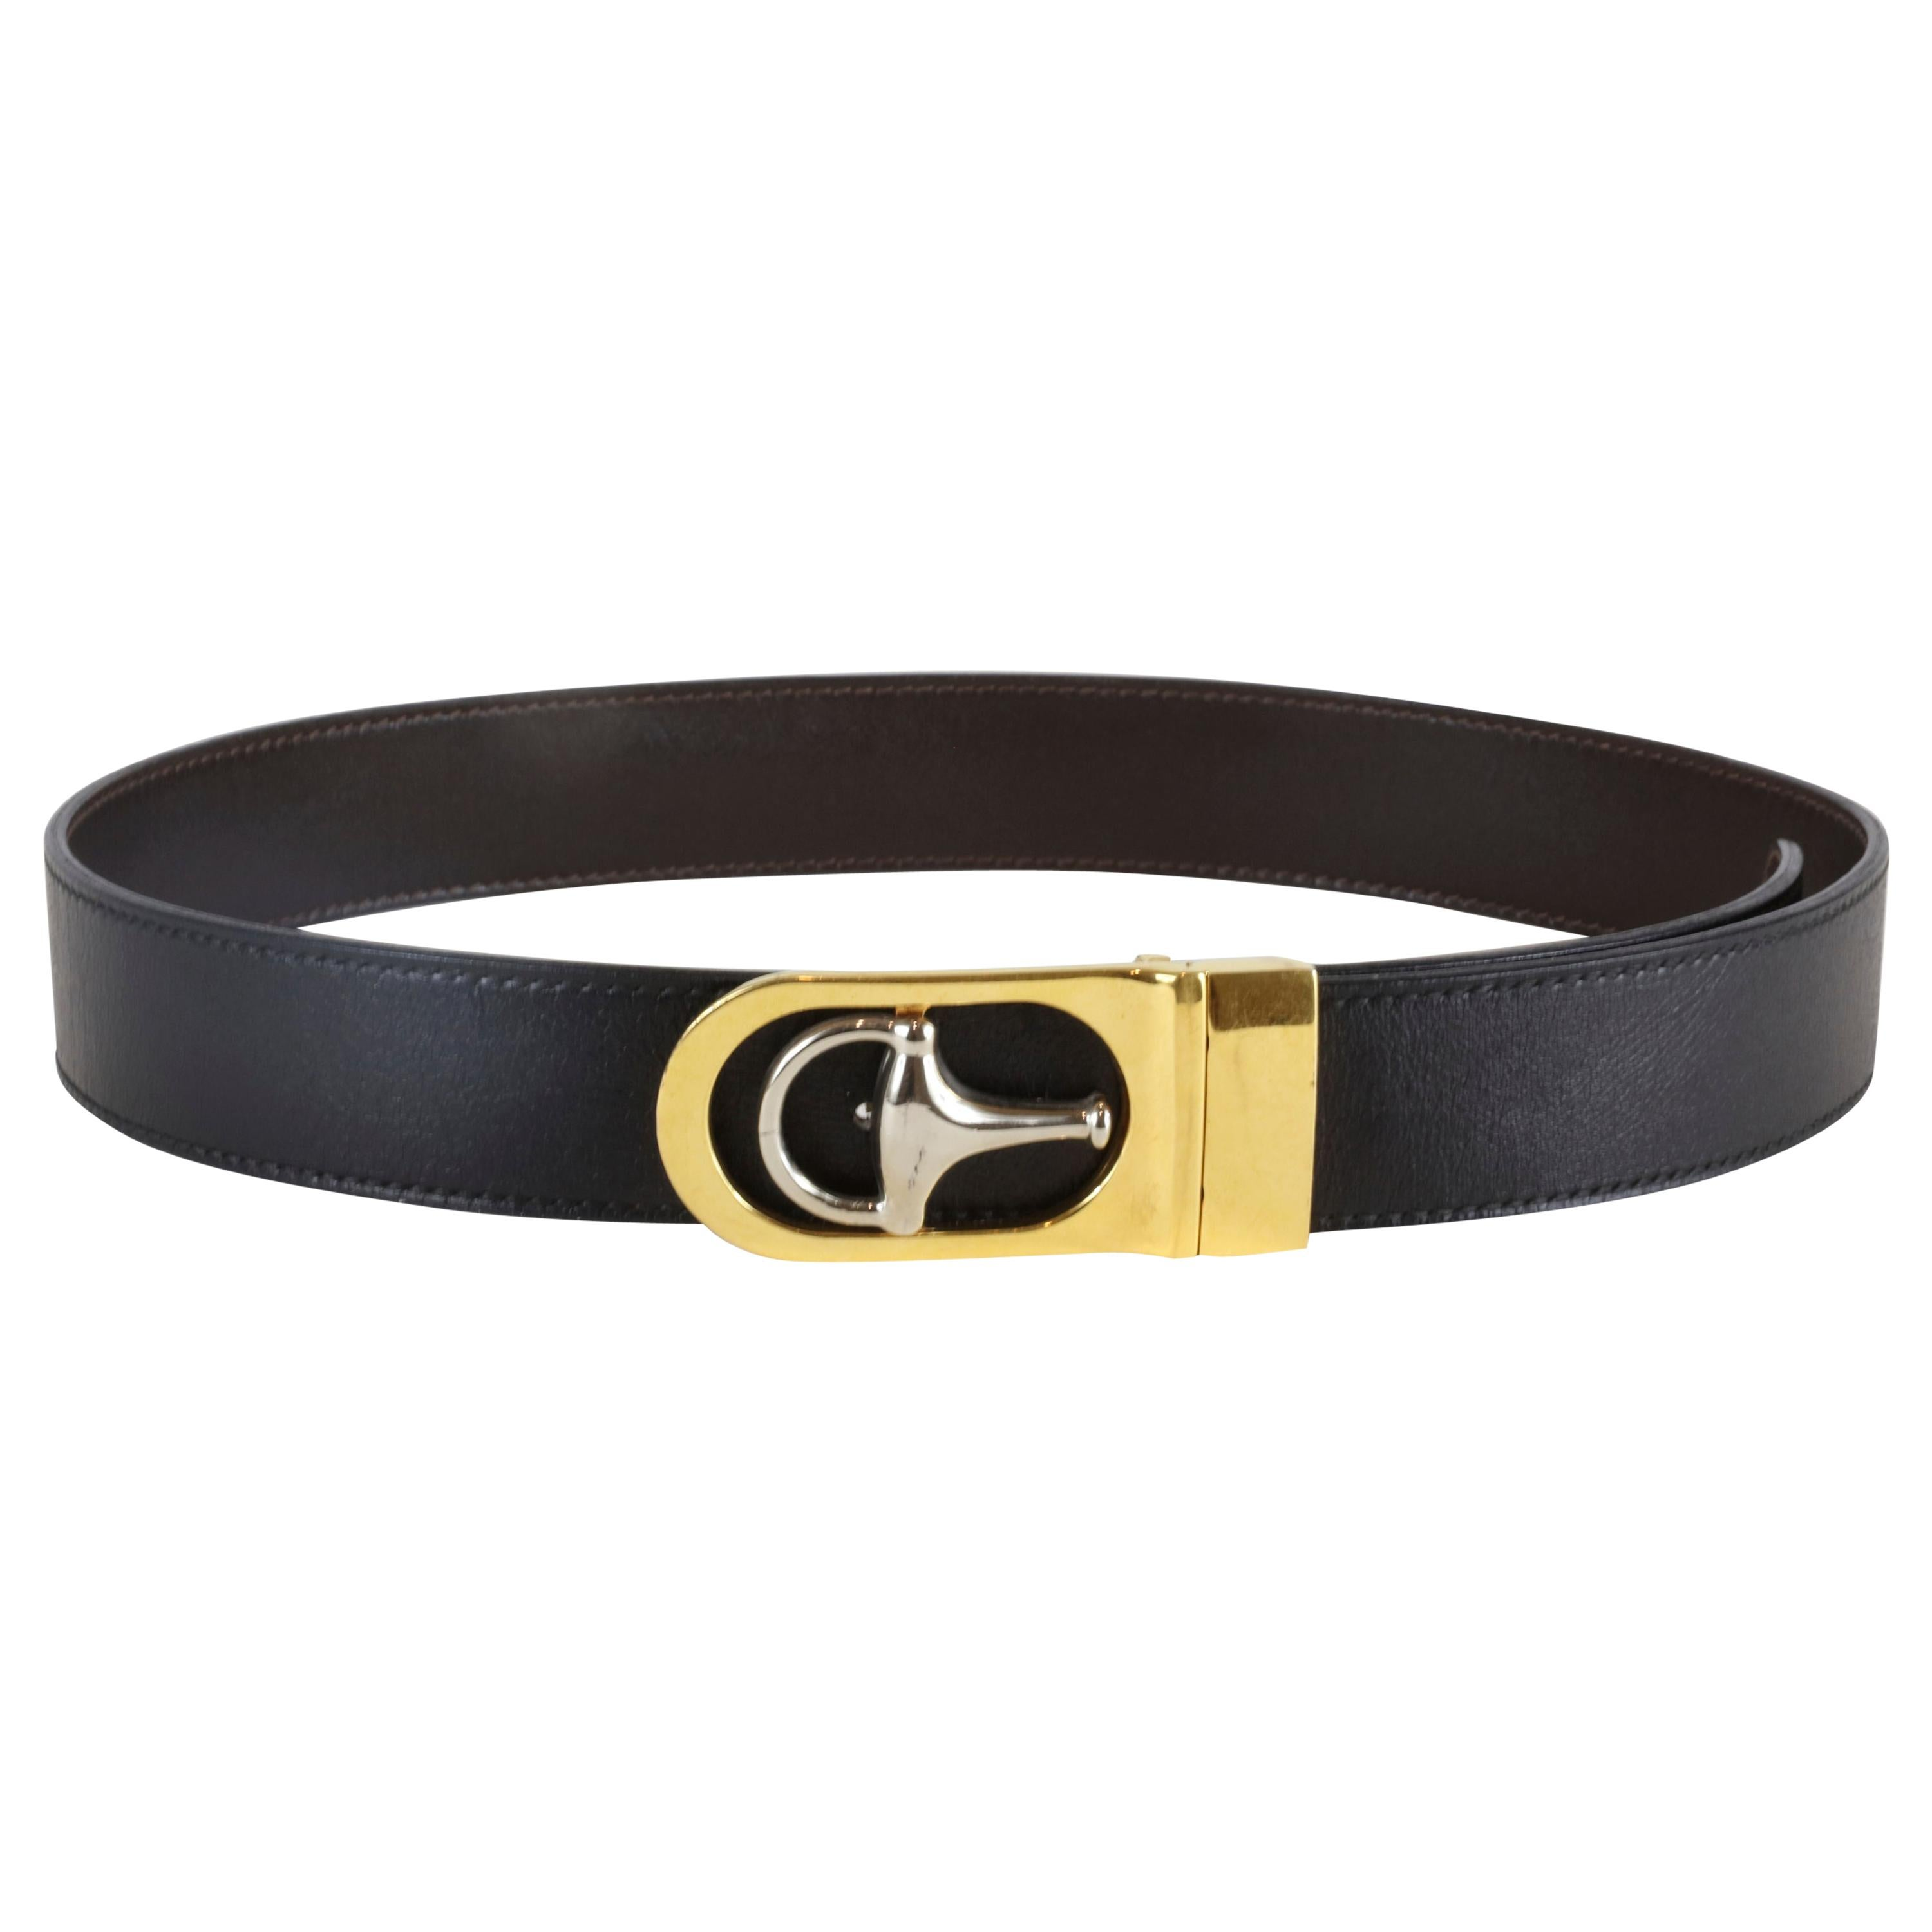 Gucci Black Leather Belt with Silver and Gold Hardware